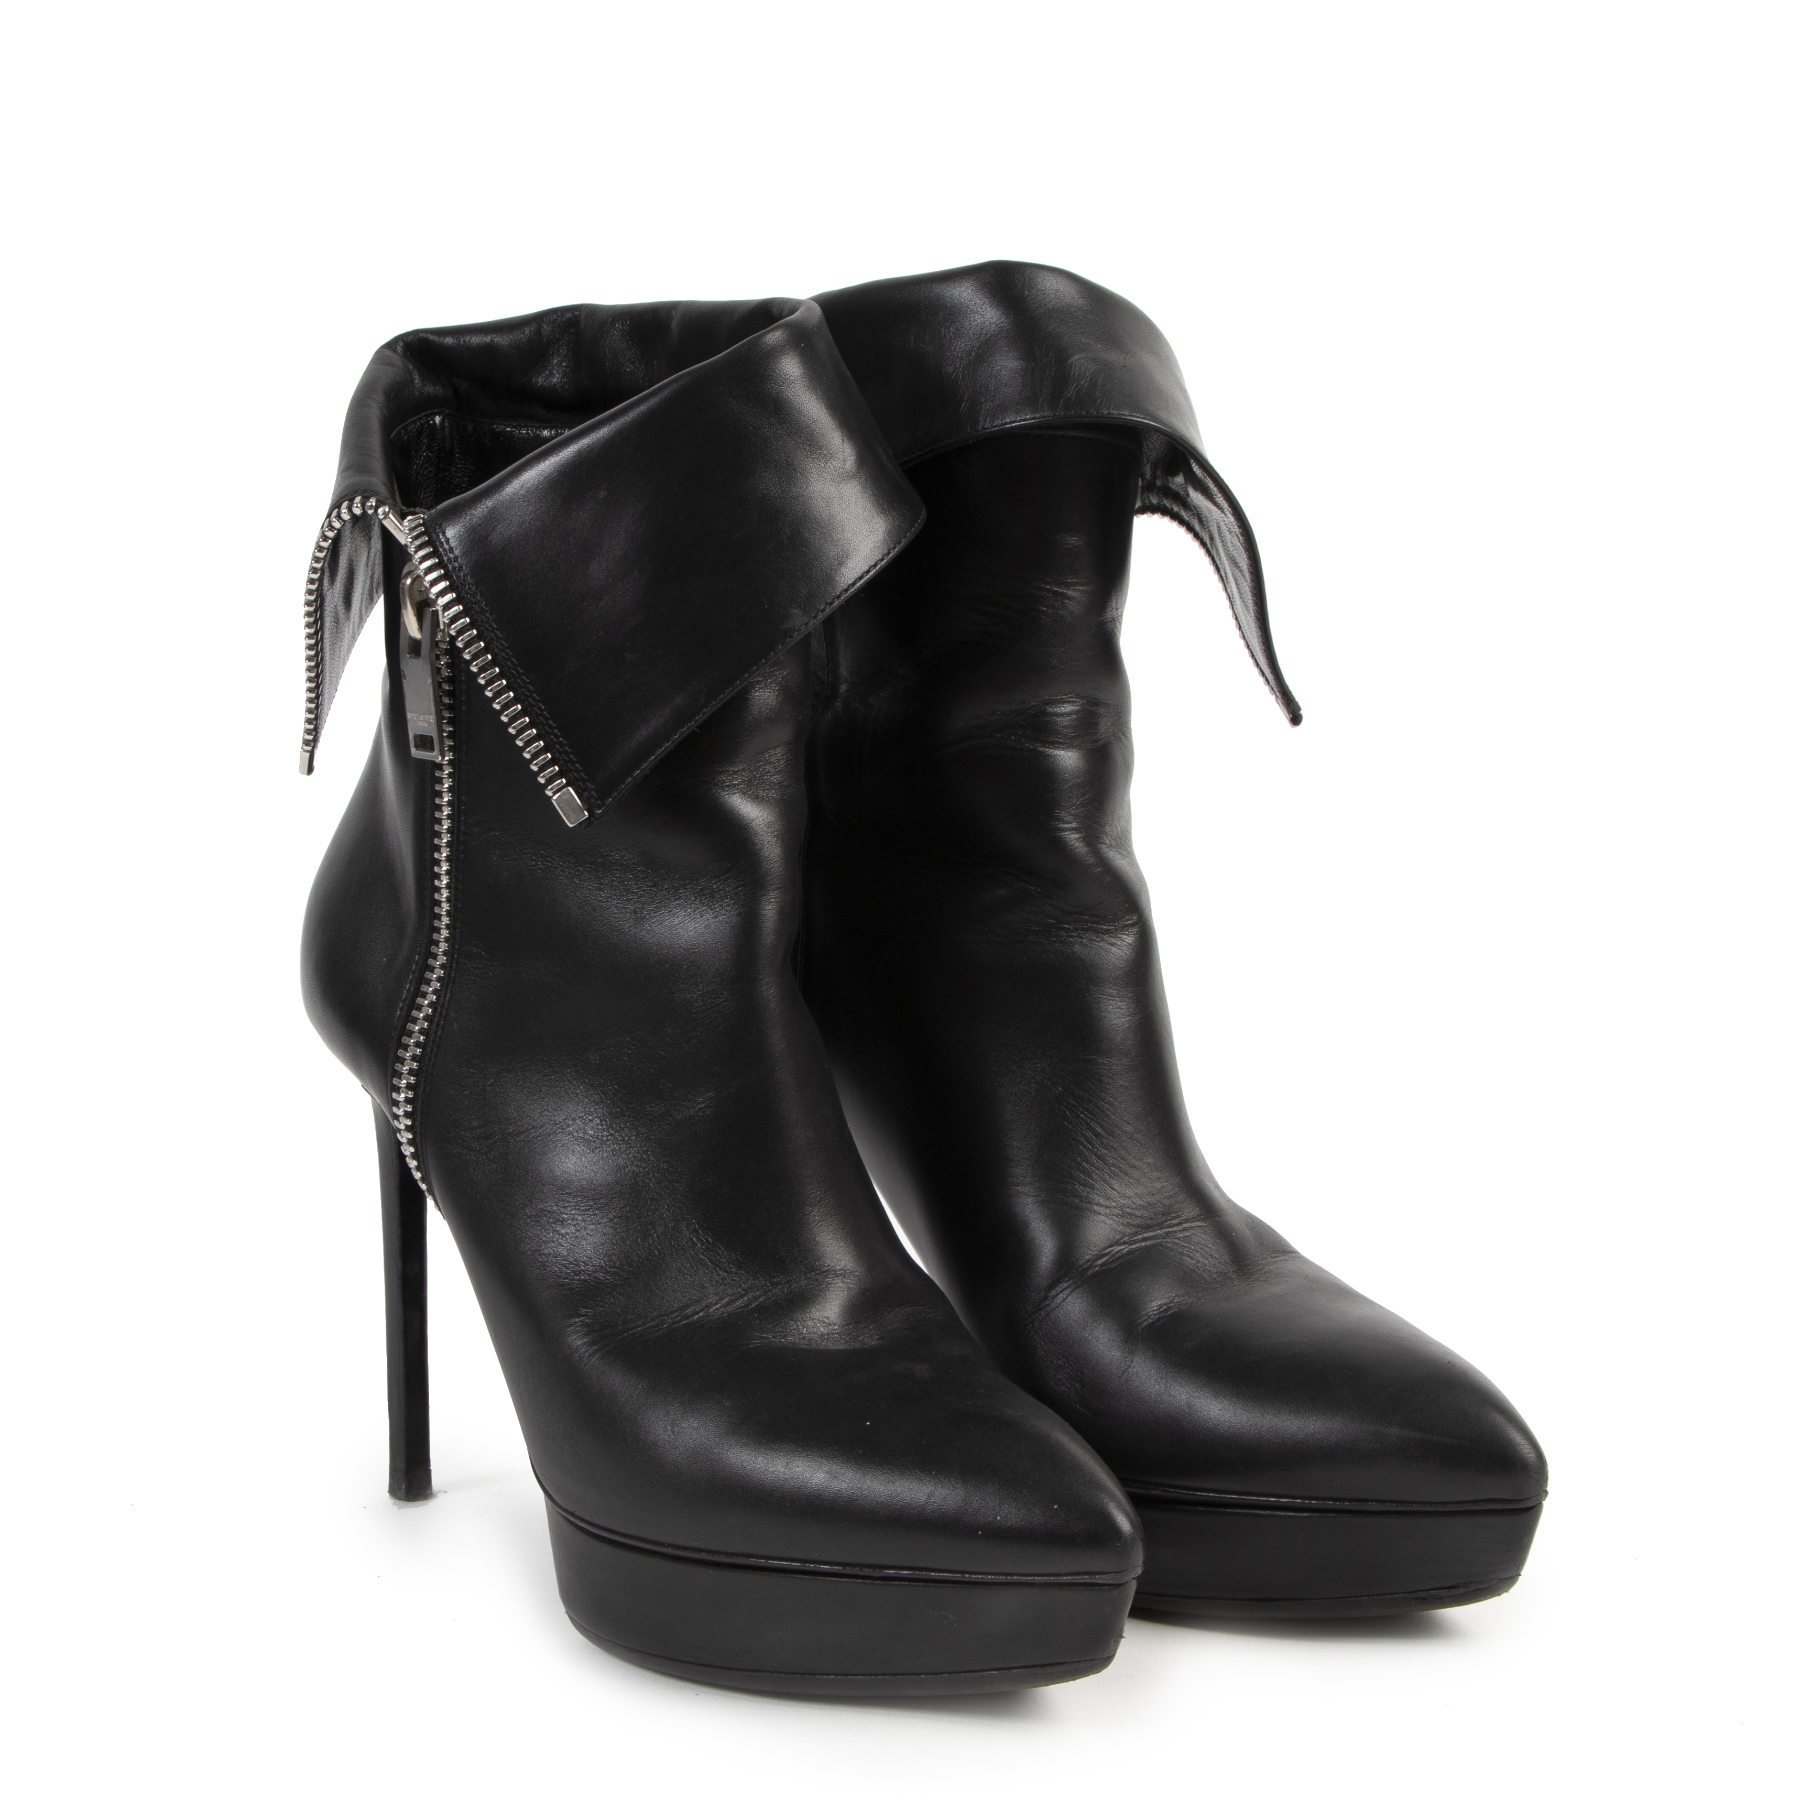 Saint Laurent Janis Black Leather Zipper Boots - Size 40